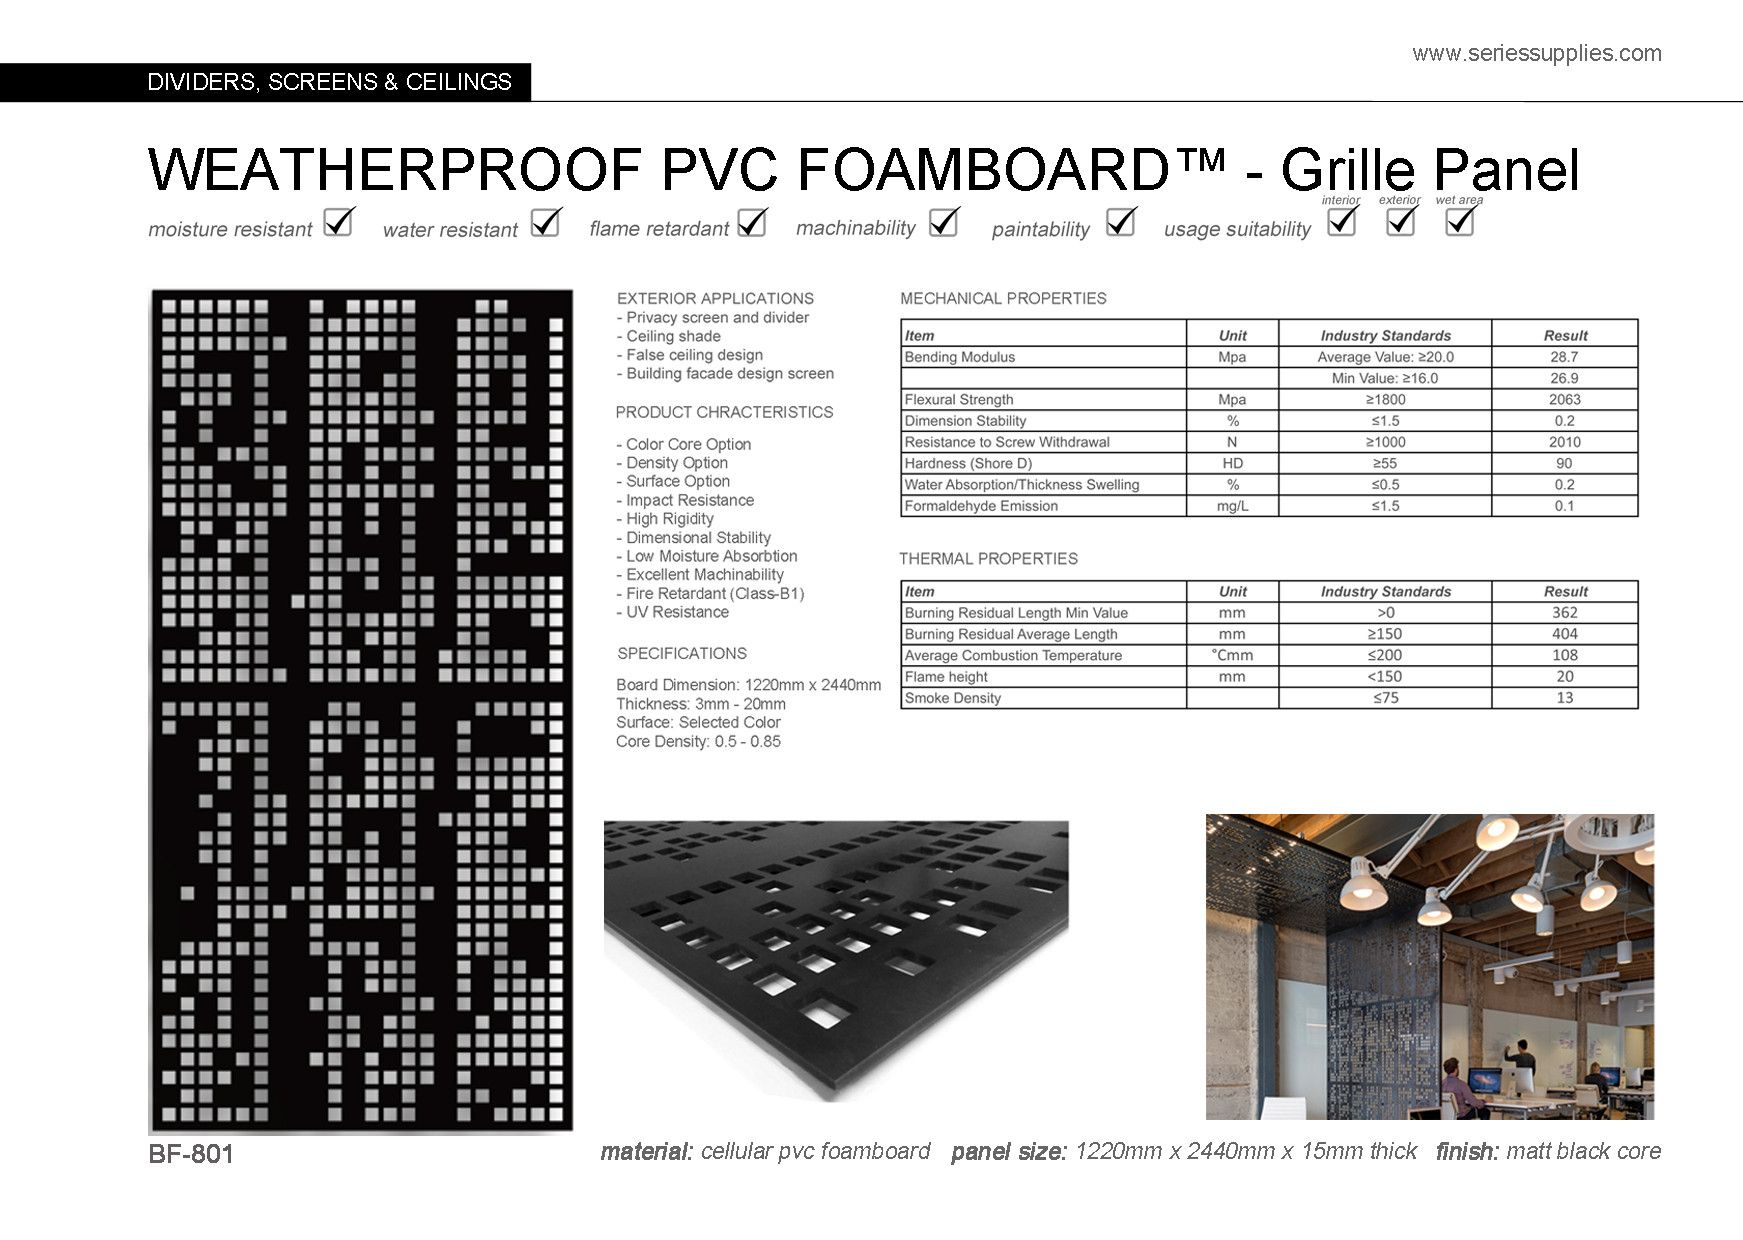 Weatherproof Pvc Formboardcellula Pvc Foamboard Is Used Mainly For Industrial And Manufacturing Purpos Partition Wall Interior Wall Design Textured Wall Panels